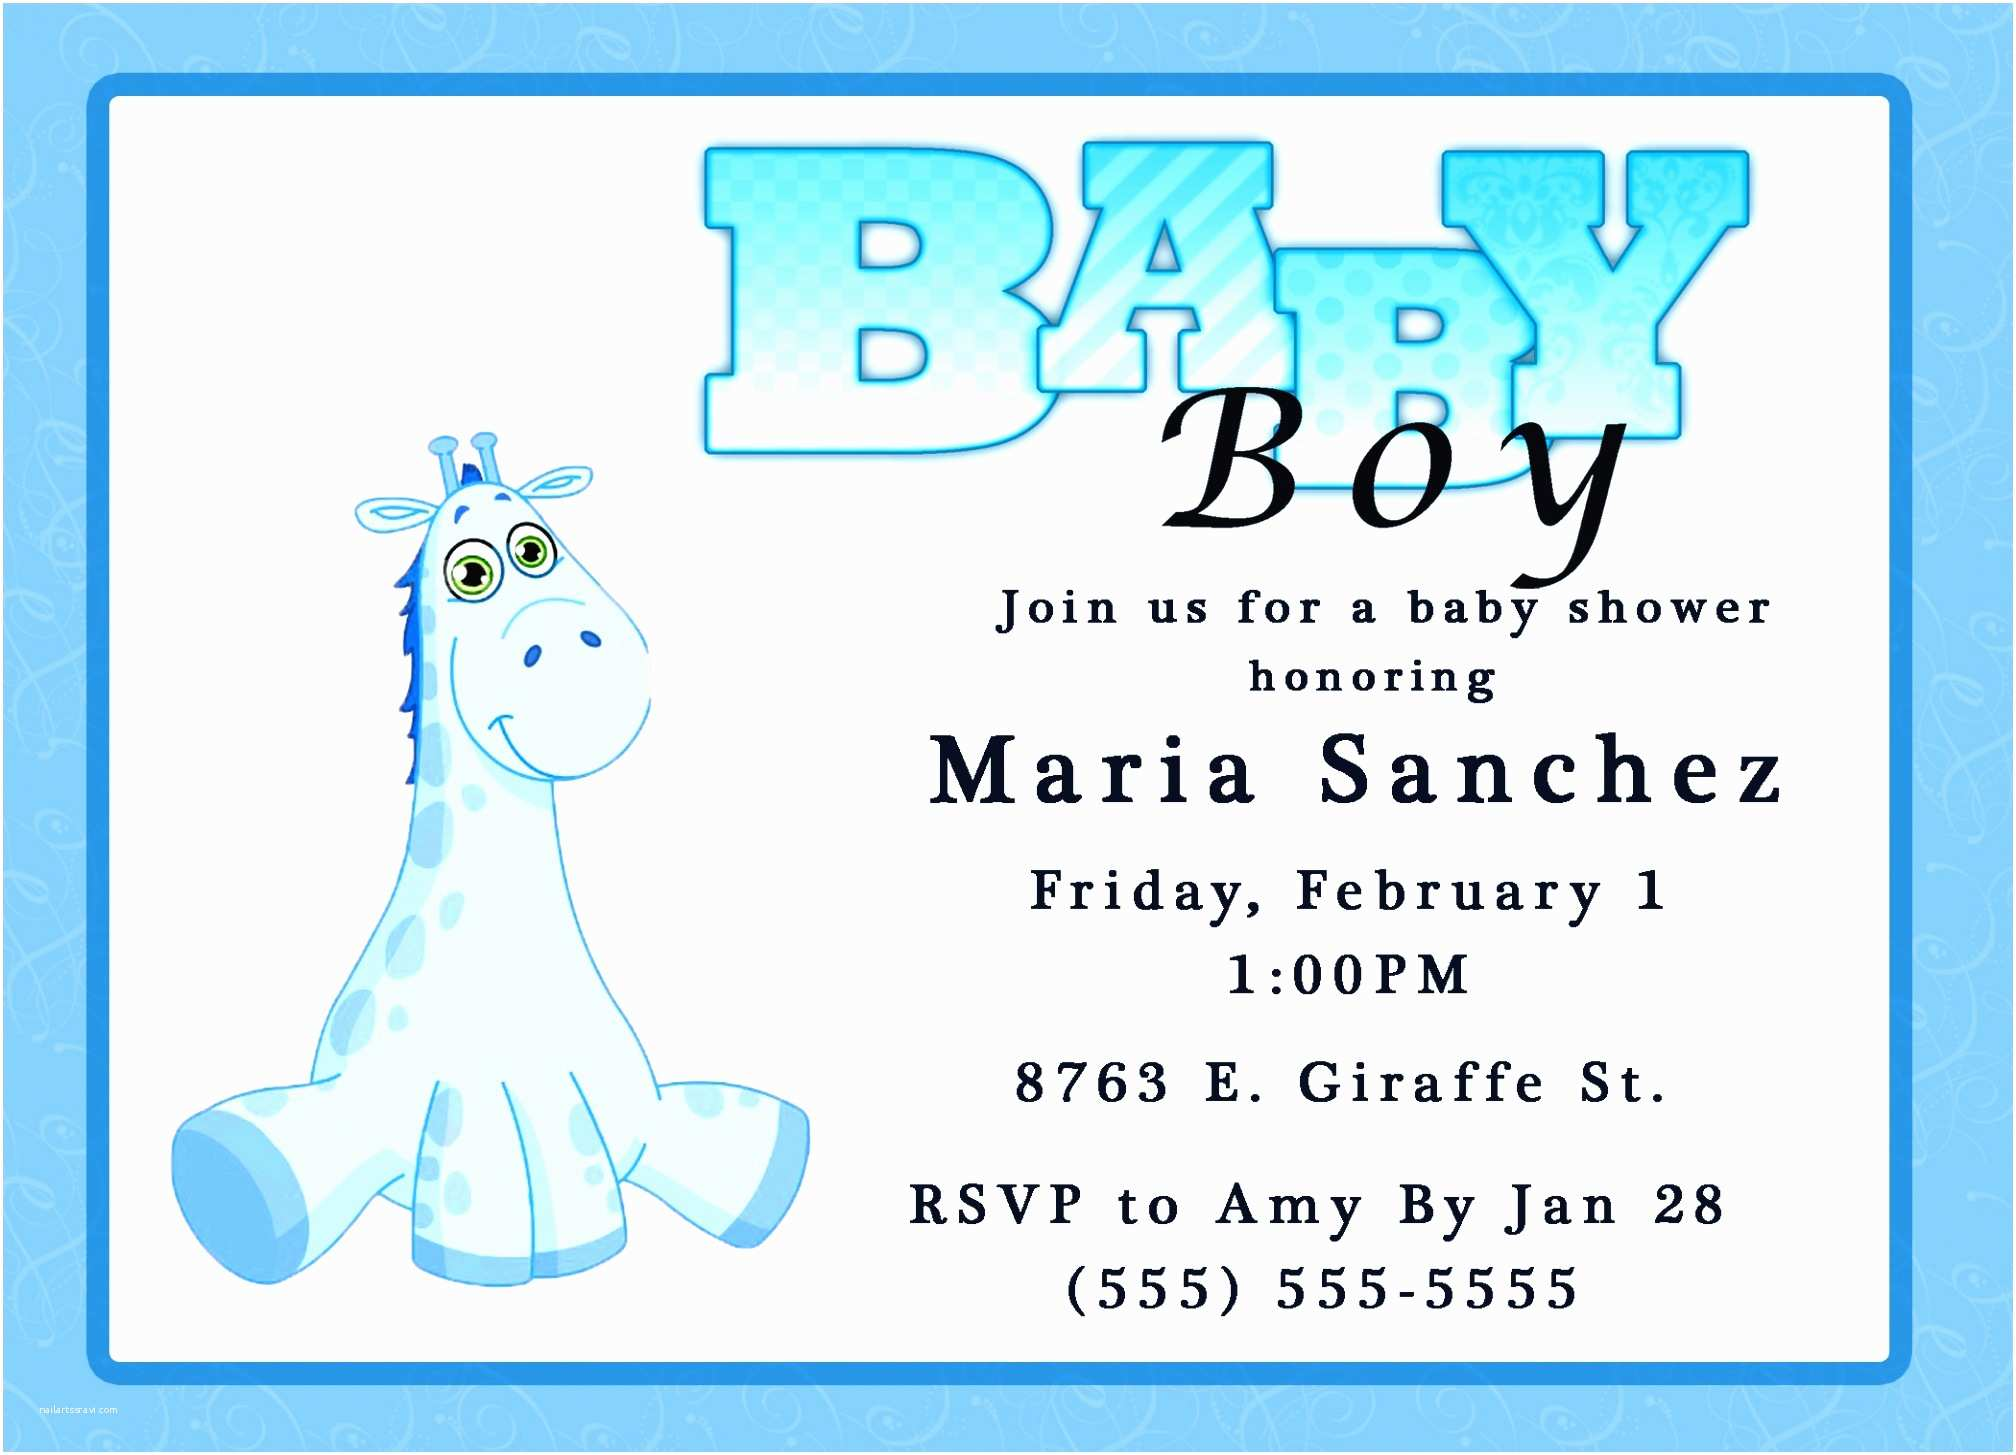 Baby Shower Invitation Wording for A Boy Printable Baby Shower Invites Template Resume Builder